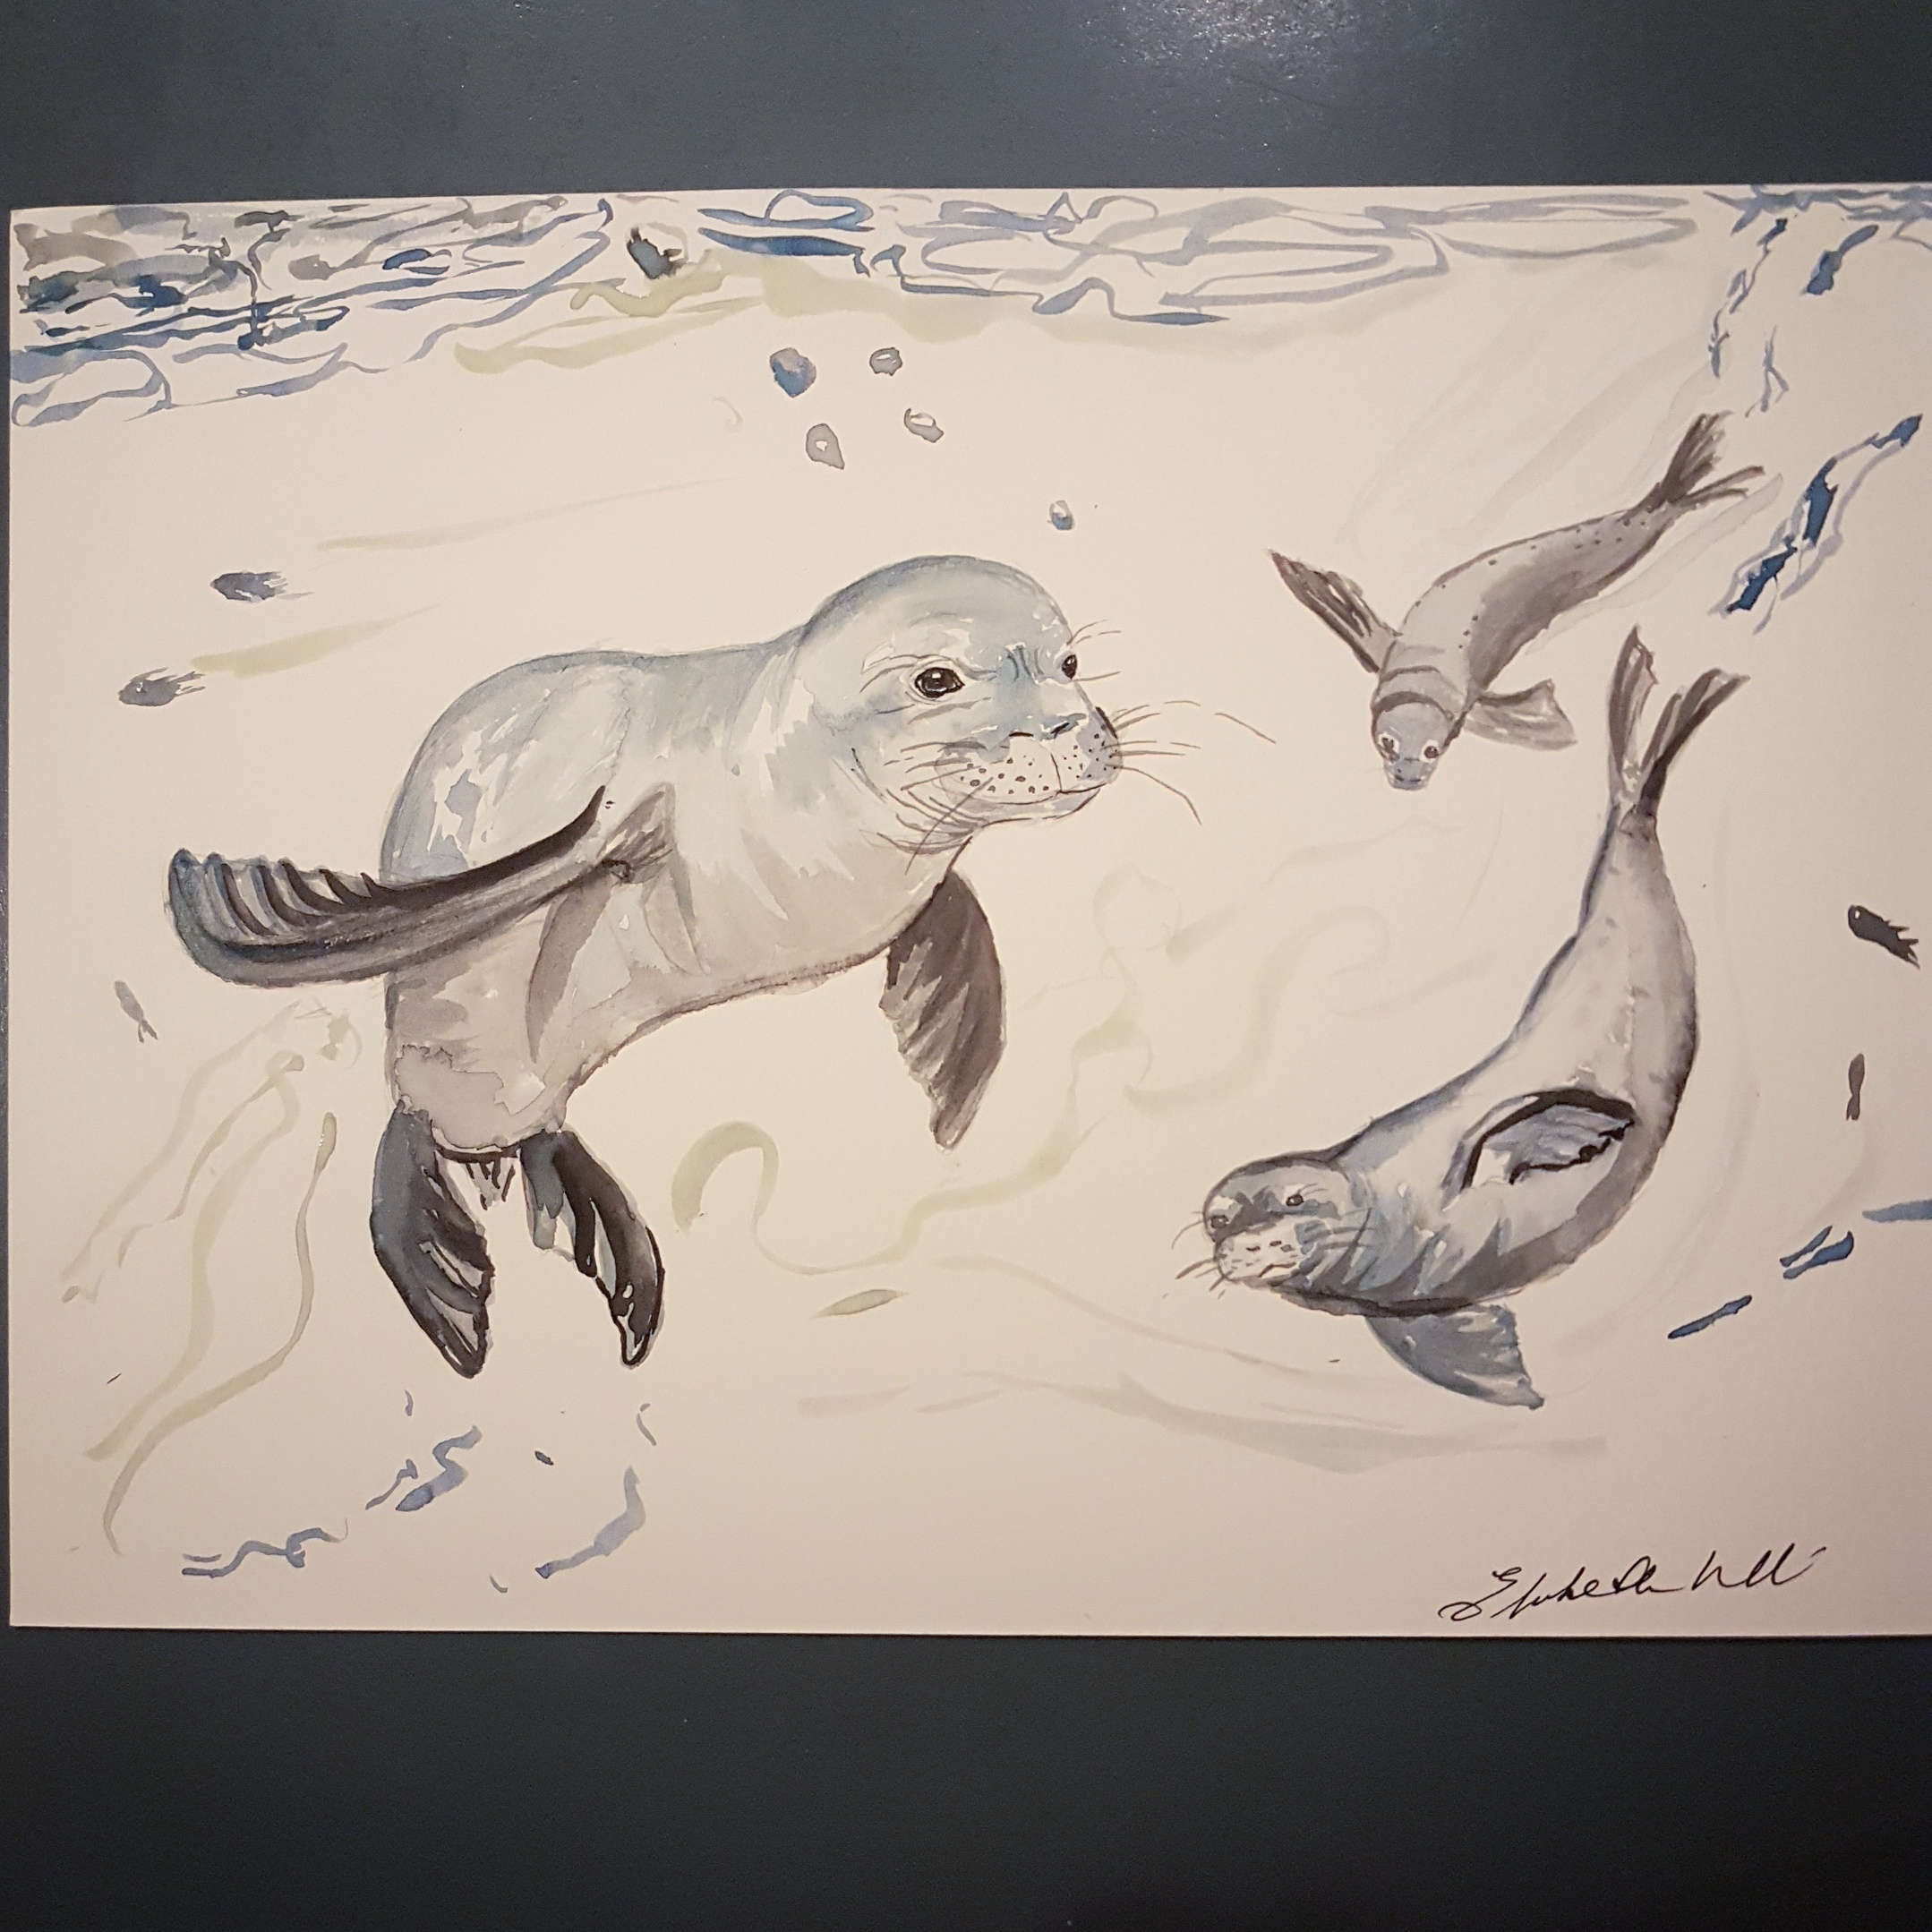 Inquisitive seals